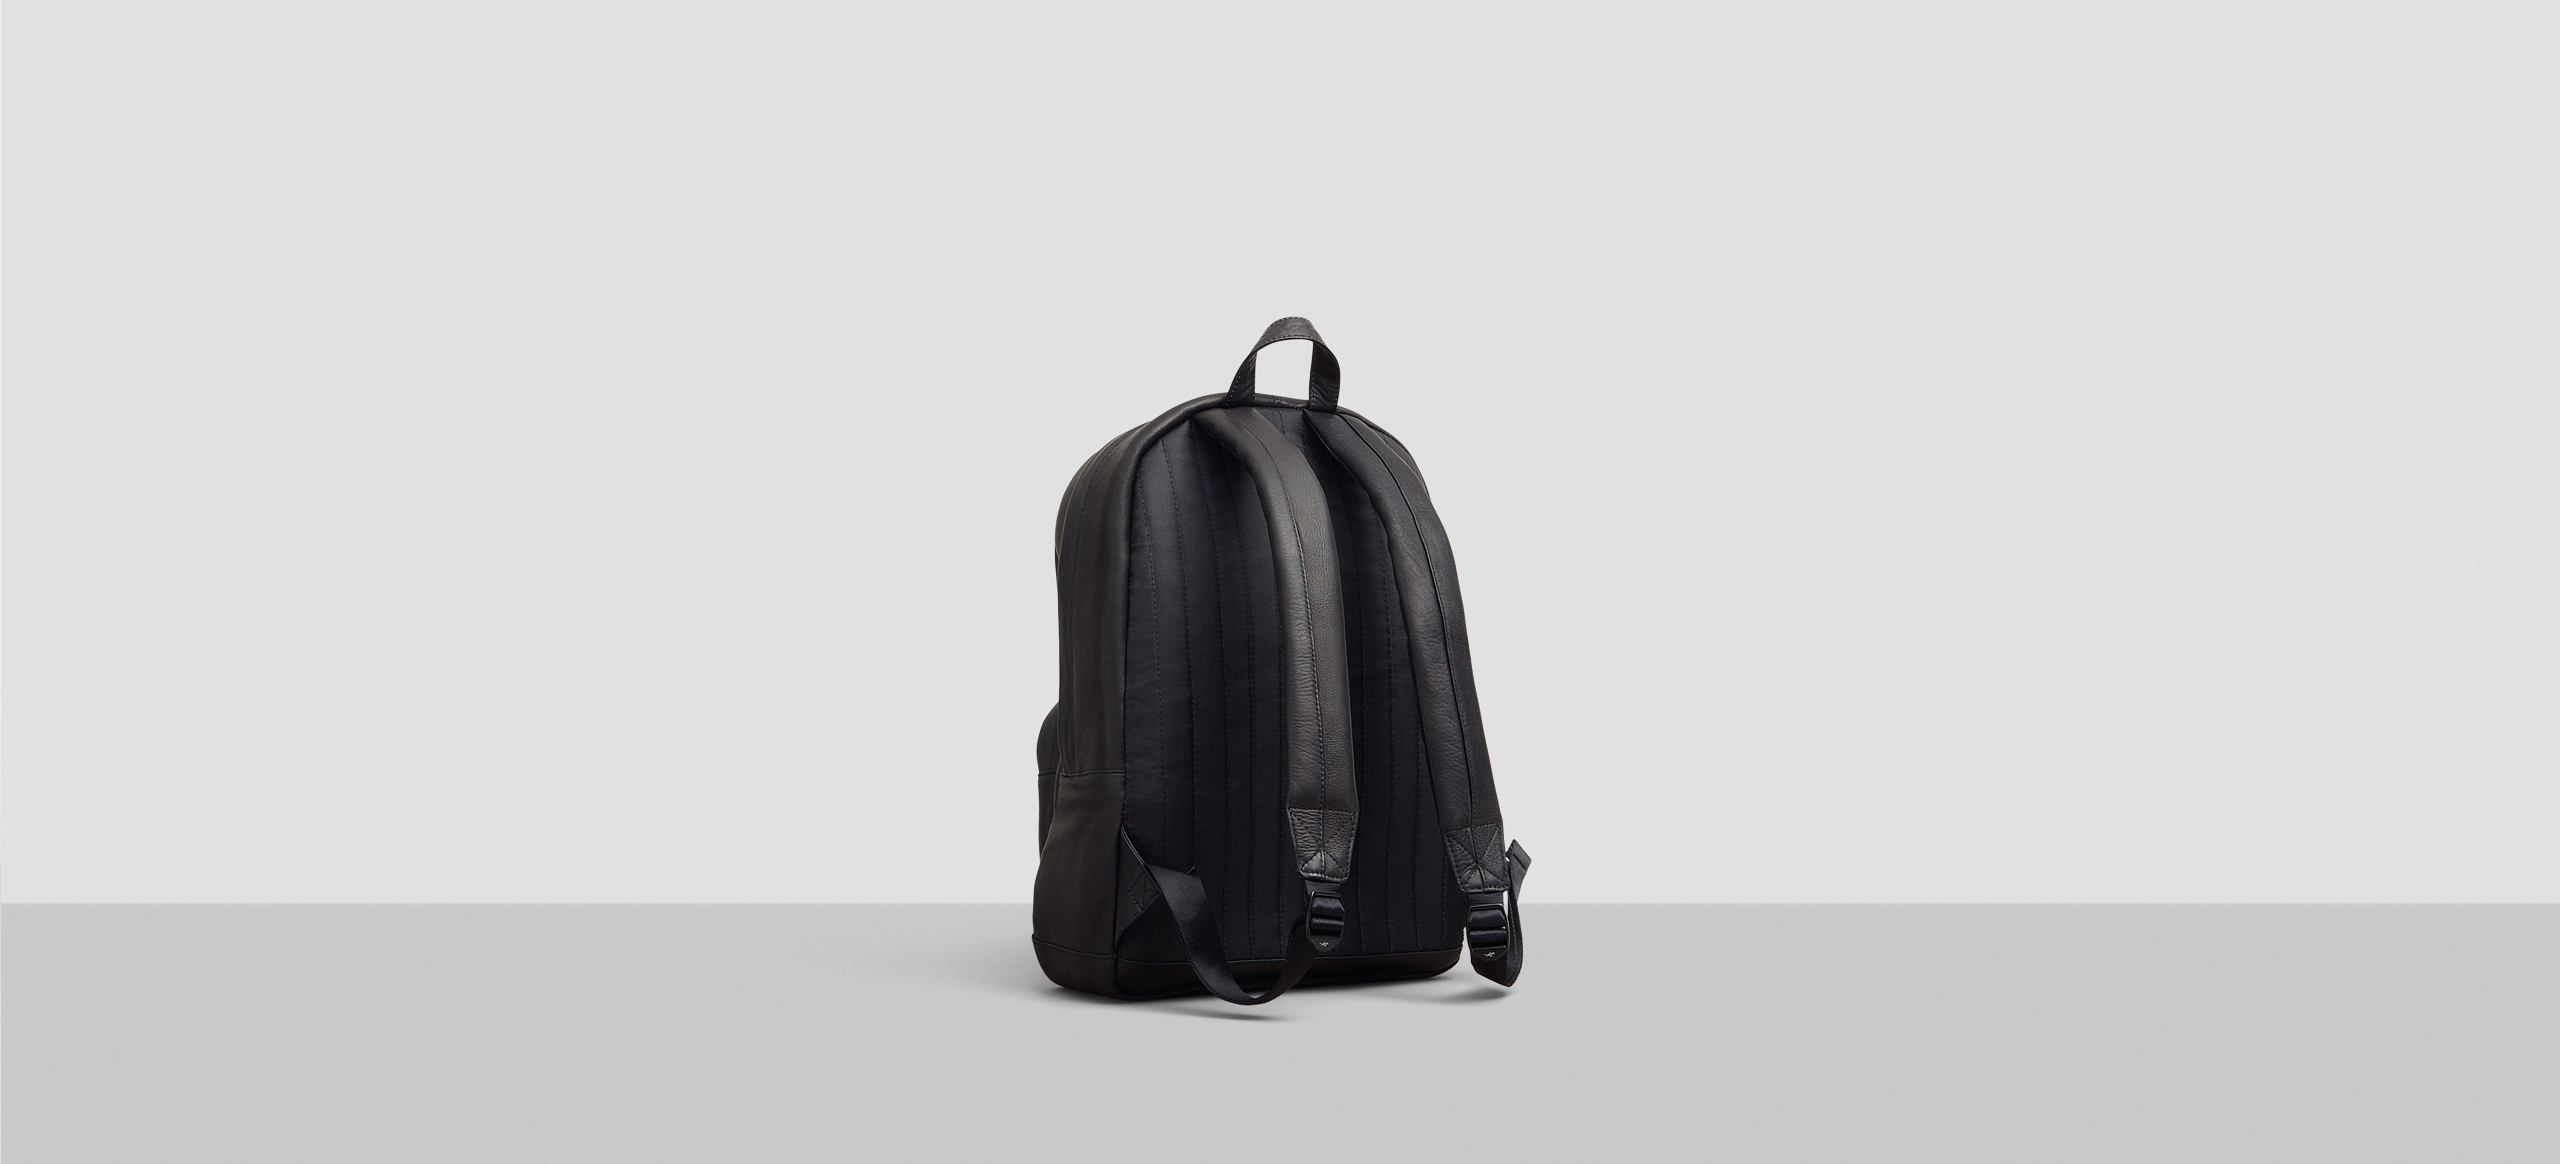 bec3584f3569 Lyst - Kenneth Cole Columbian Leather Computer Backpack in Black for Men